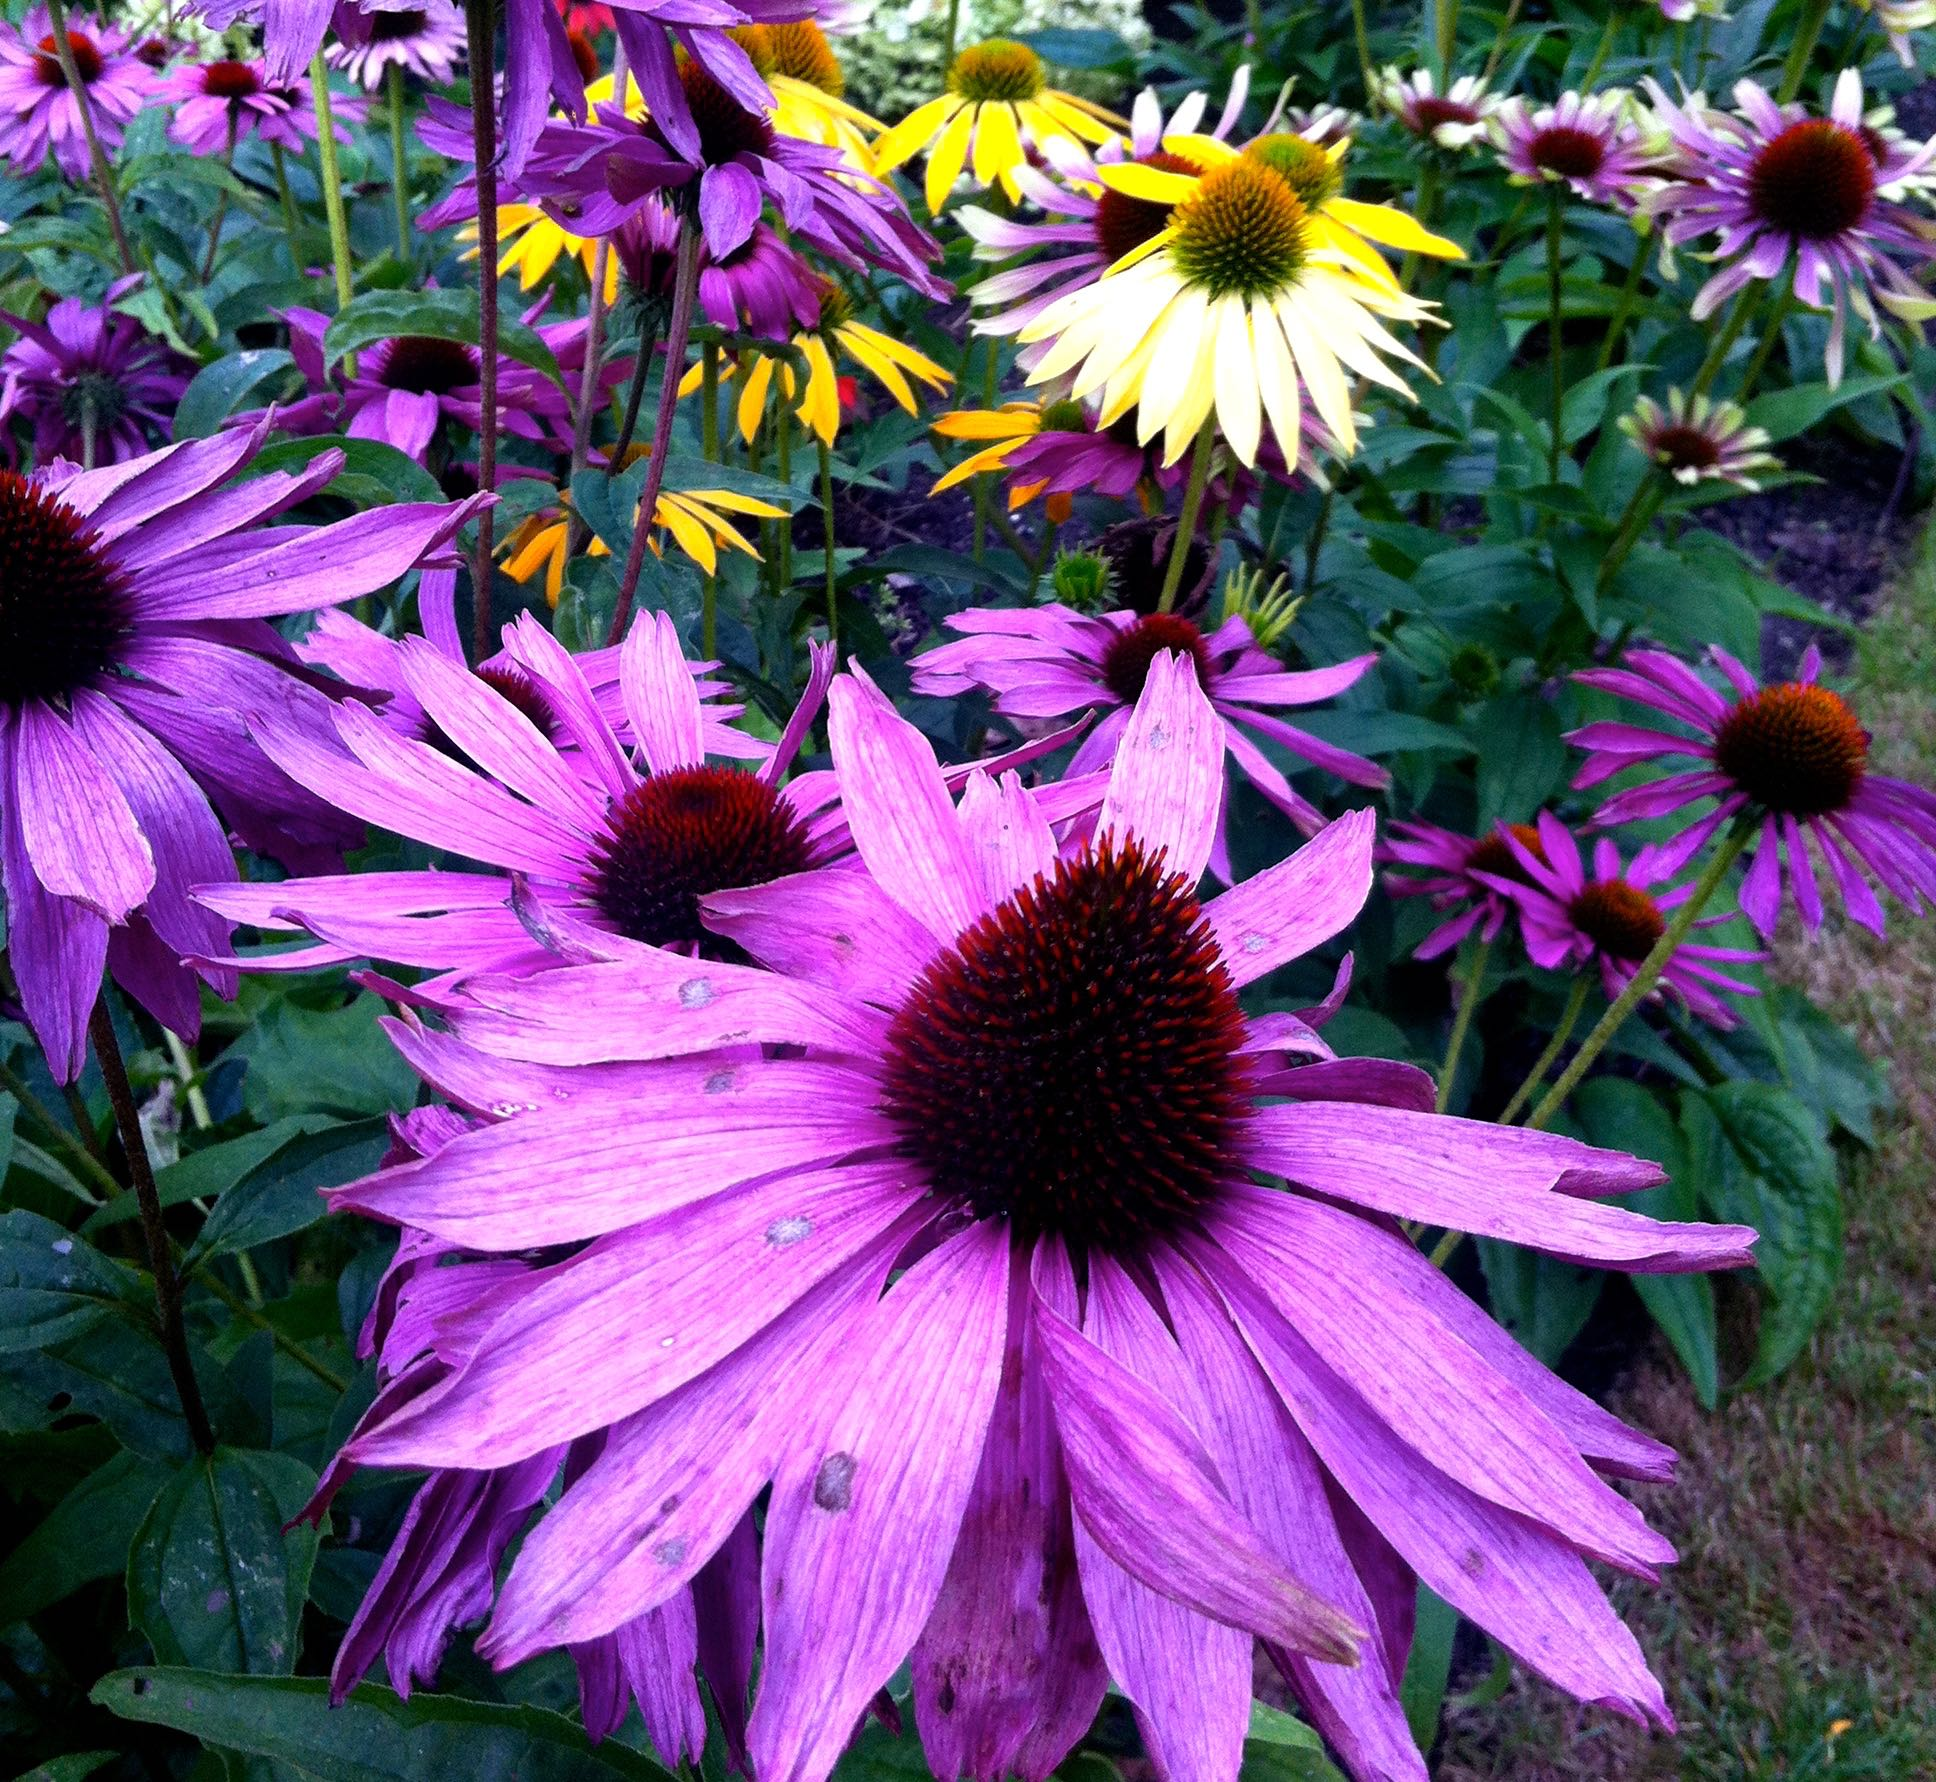 and yet more echinacea